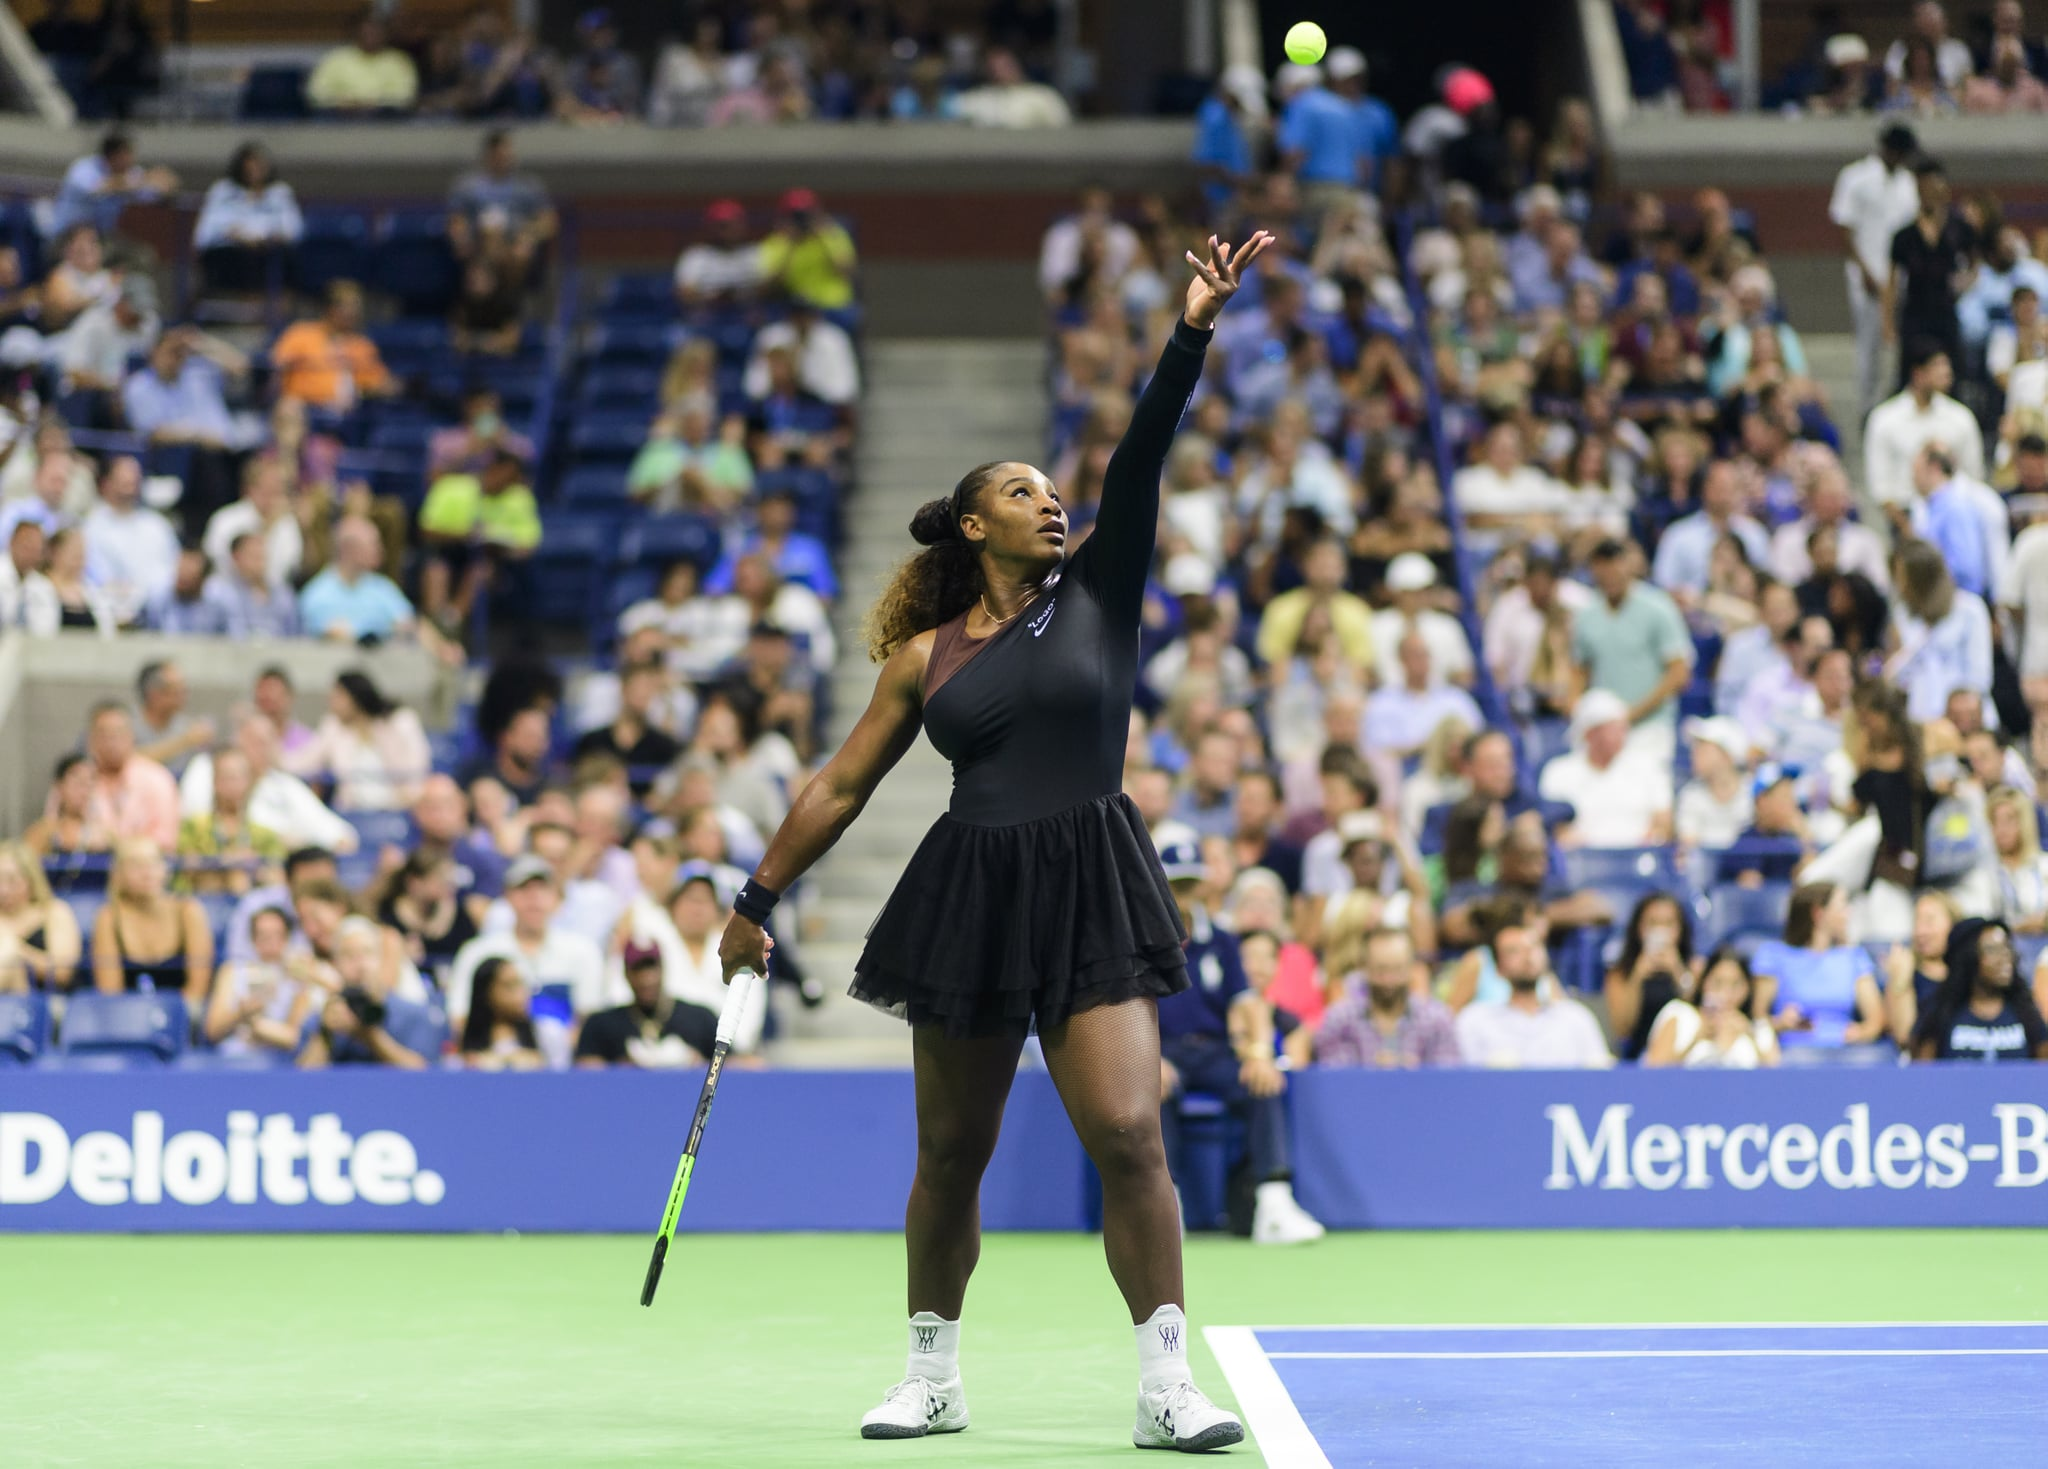 NEW YORK, NY - AUGUST 27: Serena Williams of the United States in action against Magda Linette of Poland in the first round of the US Open at the USTA Billie Jean King National Tennis Centre on August 27, 2018 in New York City, United States. (Photo by TPN/Getty Images)